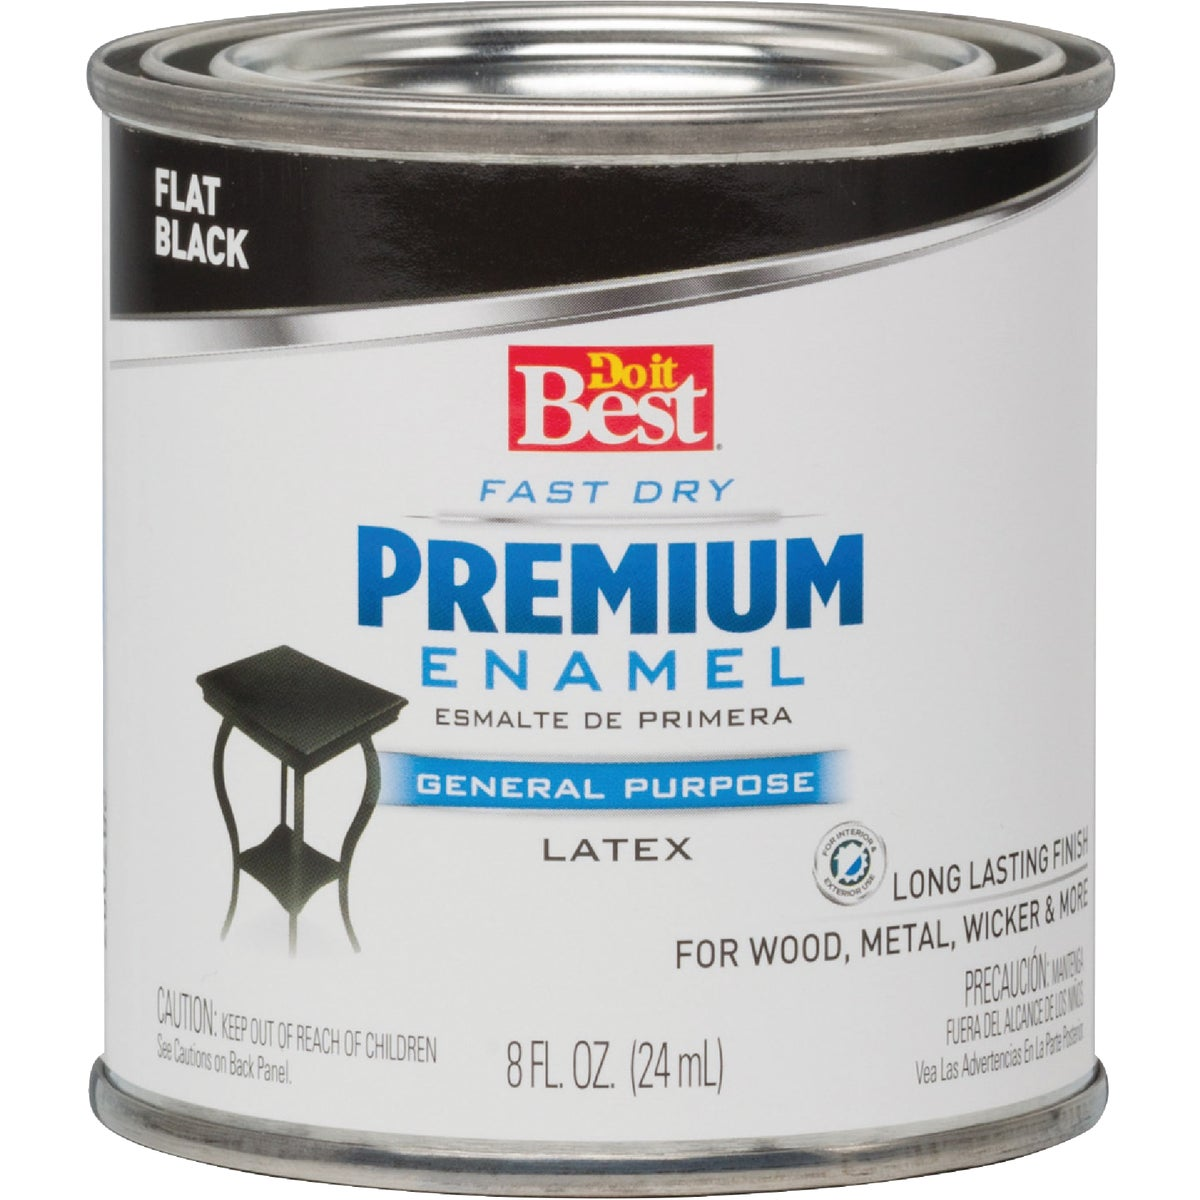 FLAT BLACK LATEX ENAMEL - 2102 by Rustoleum